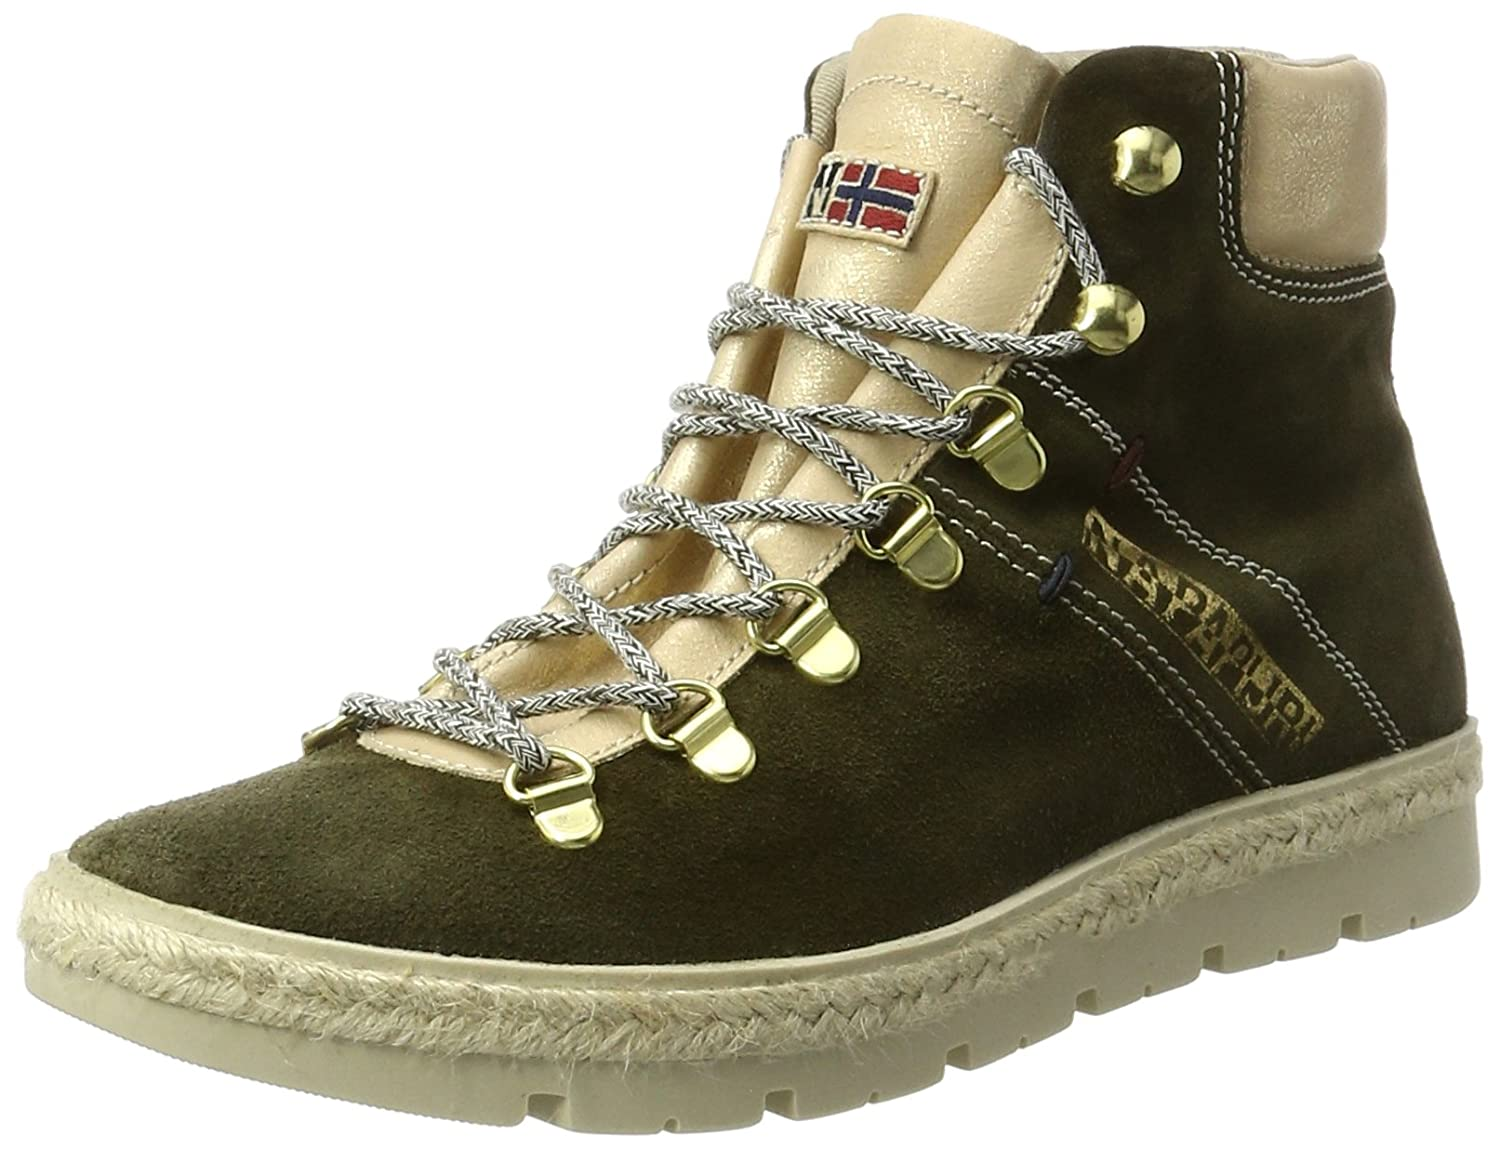 NAPAPIJRI FOOTWEAR Damen Lykke High-Top Grün (New Khaki) 39 EU